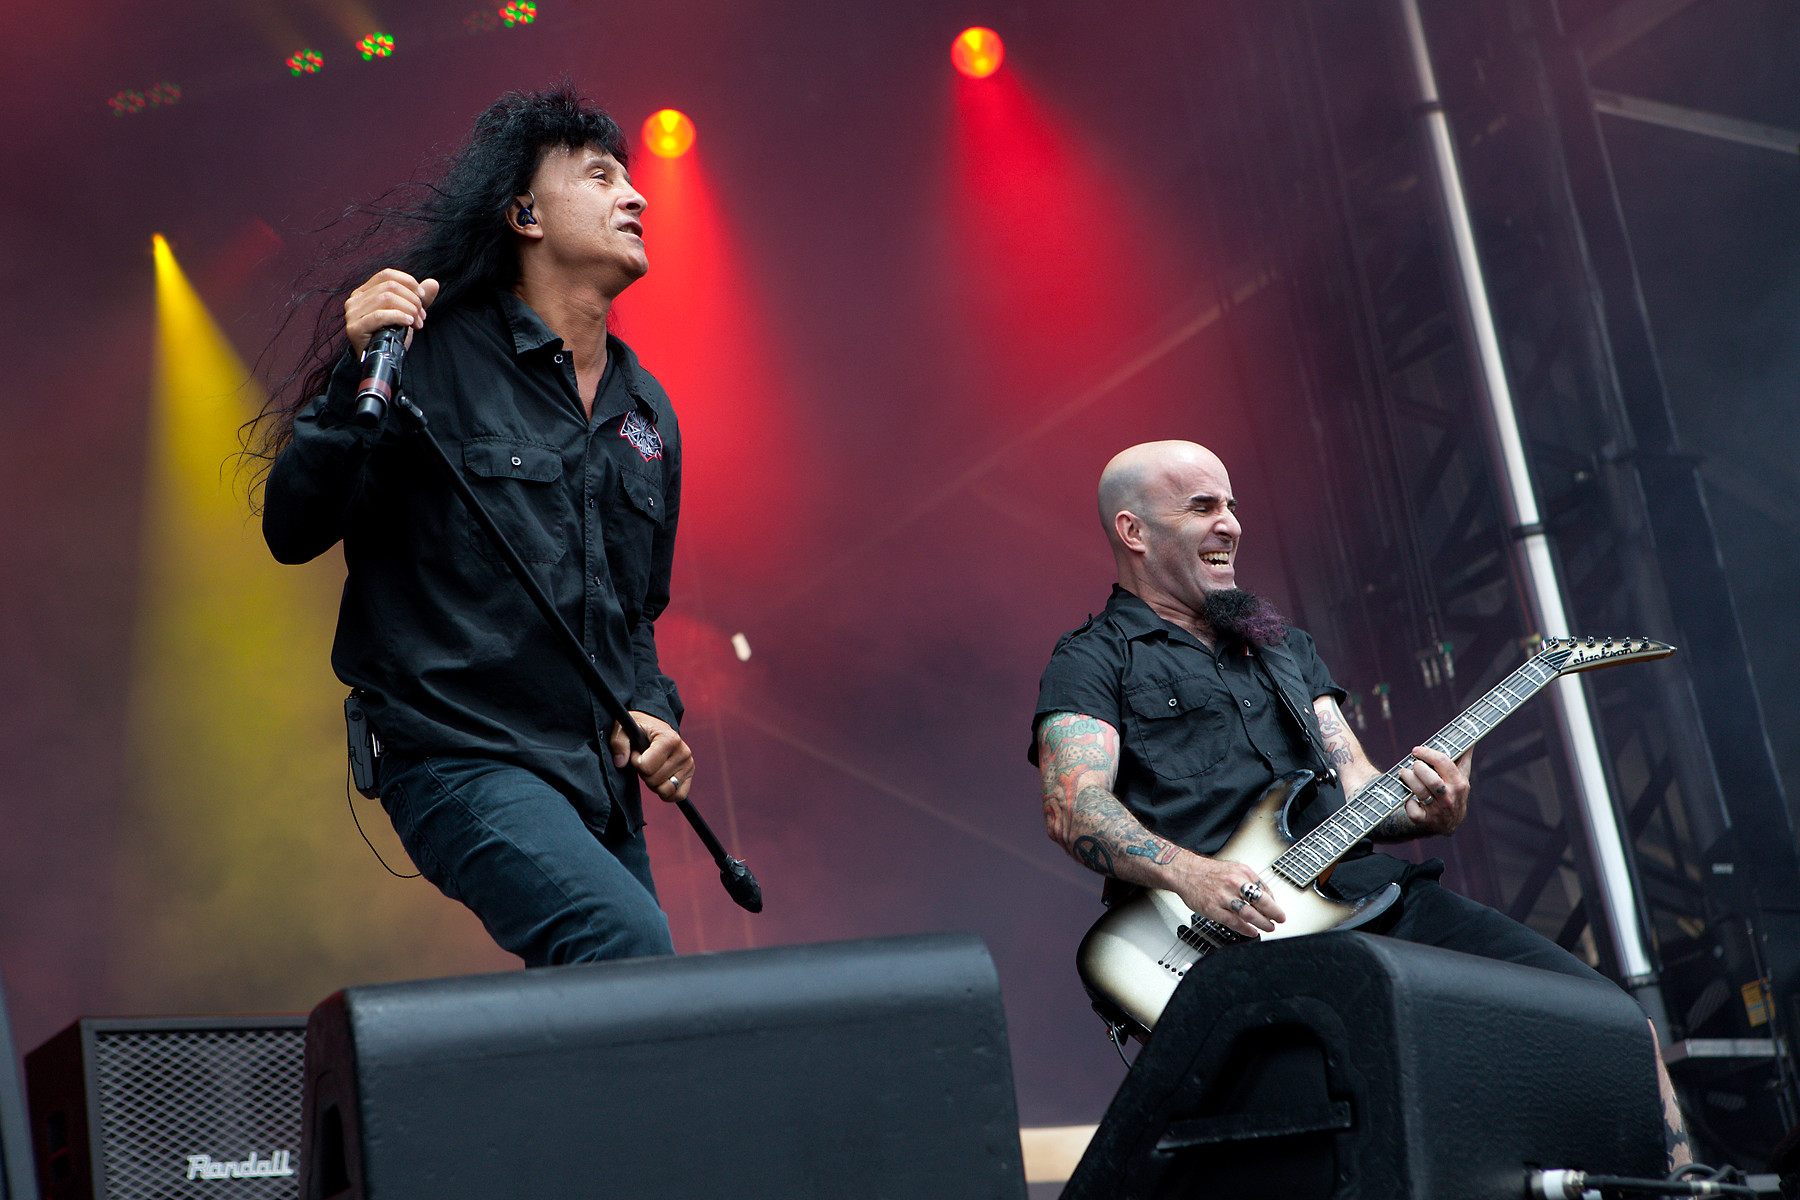 Anthrax @ Heavy T.O. 2011